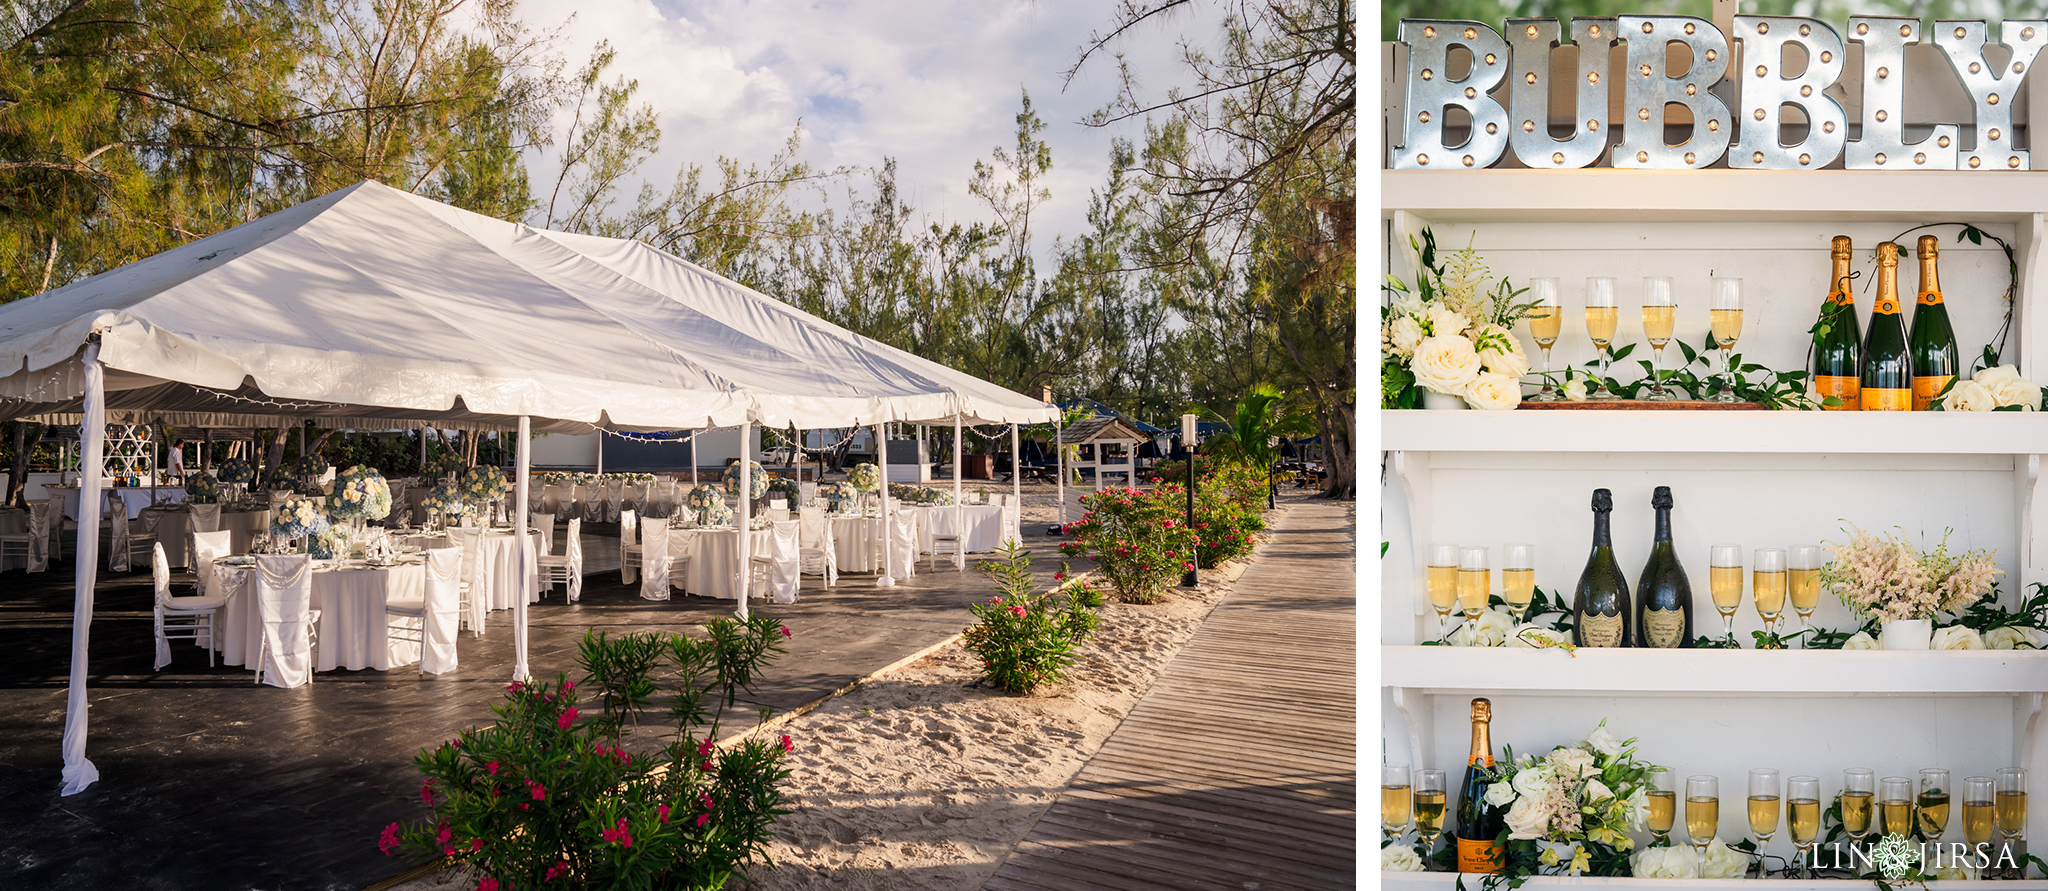 40 Turks and Caicos Travel Indian Wedding Photography